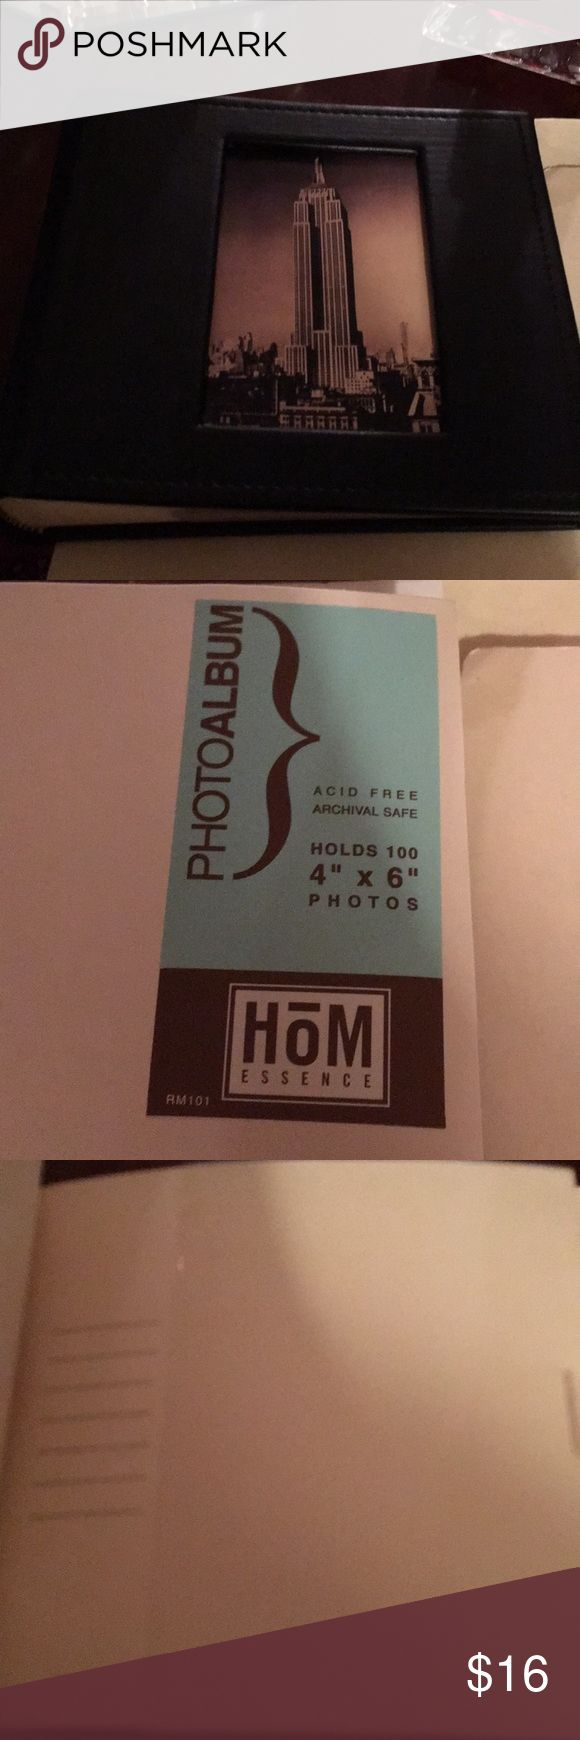 """HOM photo album 4x6 holds 100 picts NWT great gift 6x6"""" total pvc like leather black holds 100 picts 4x6""""  Great gift idea NWT nom Accessories"""